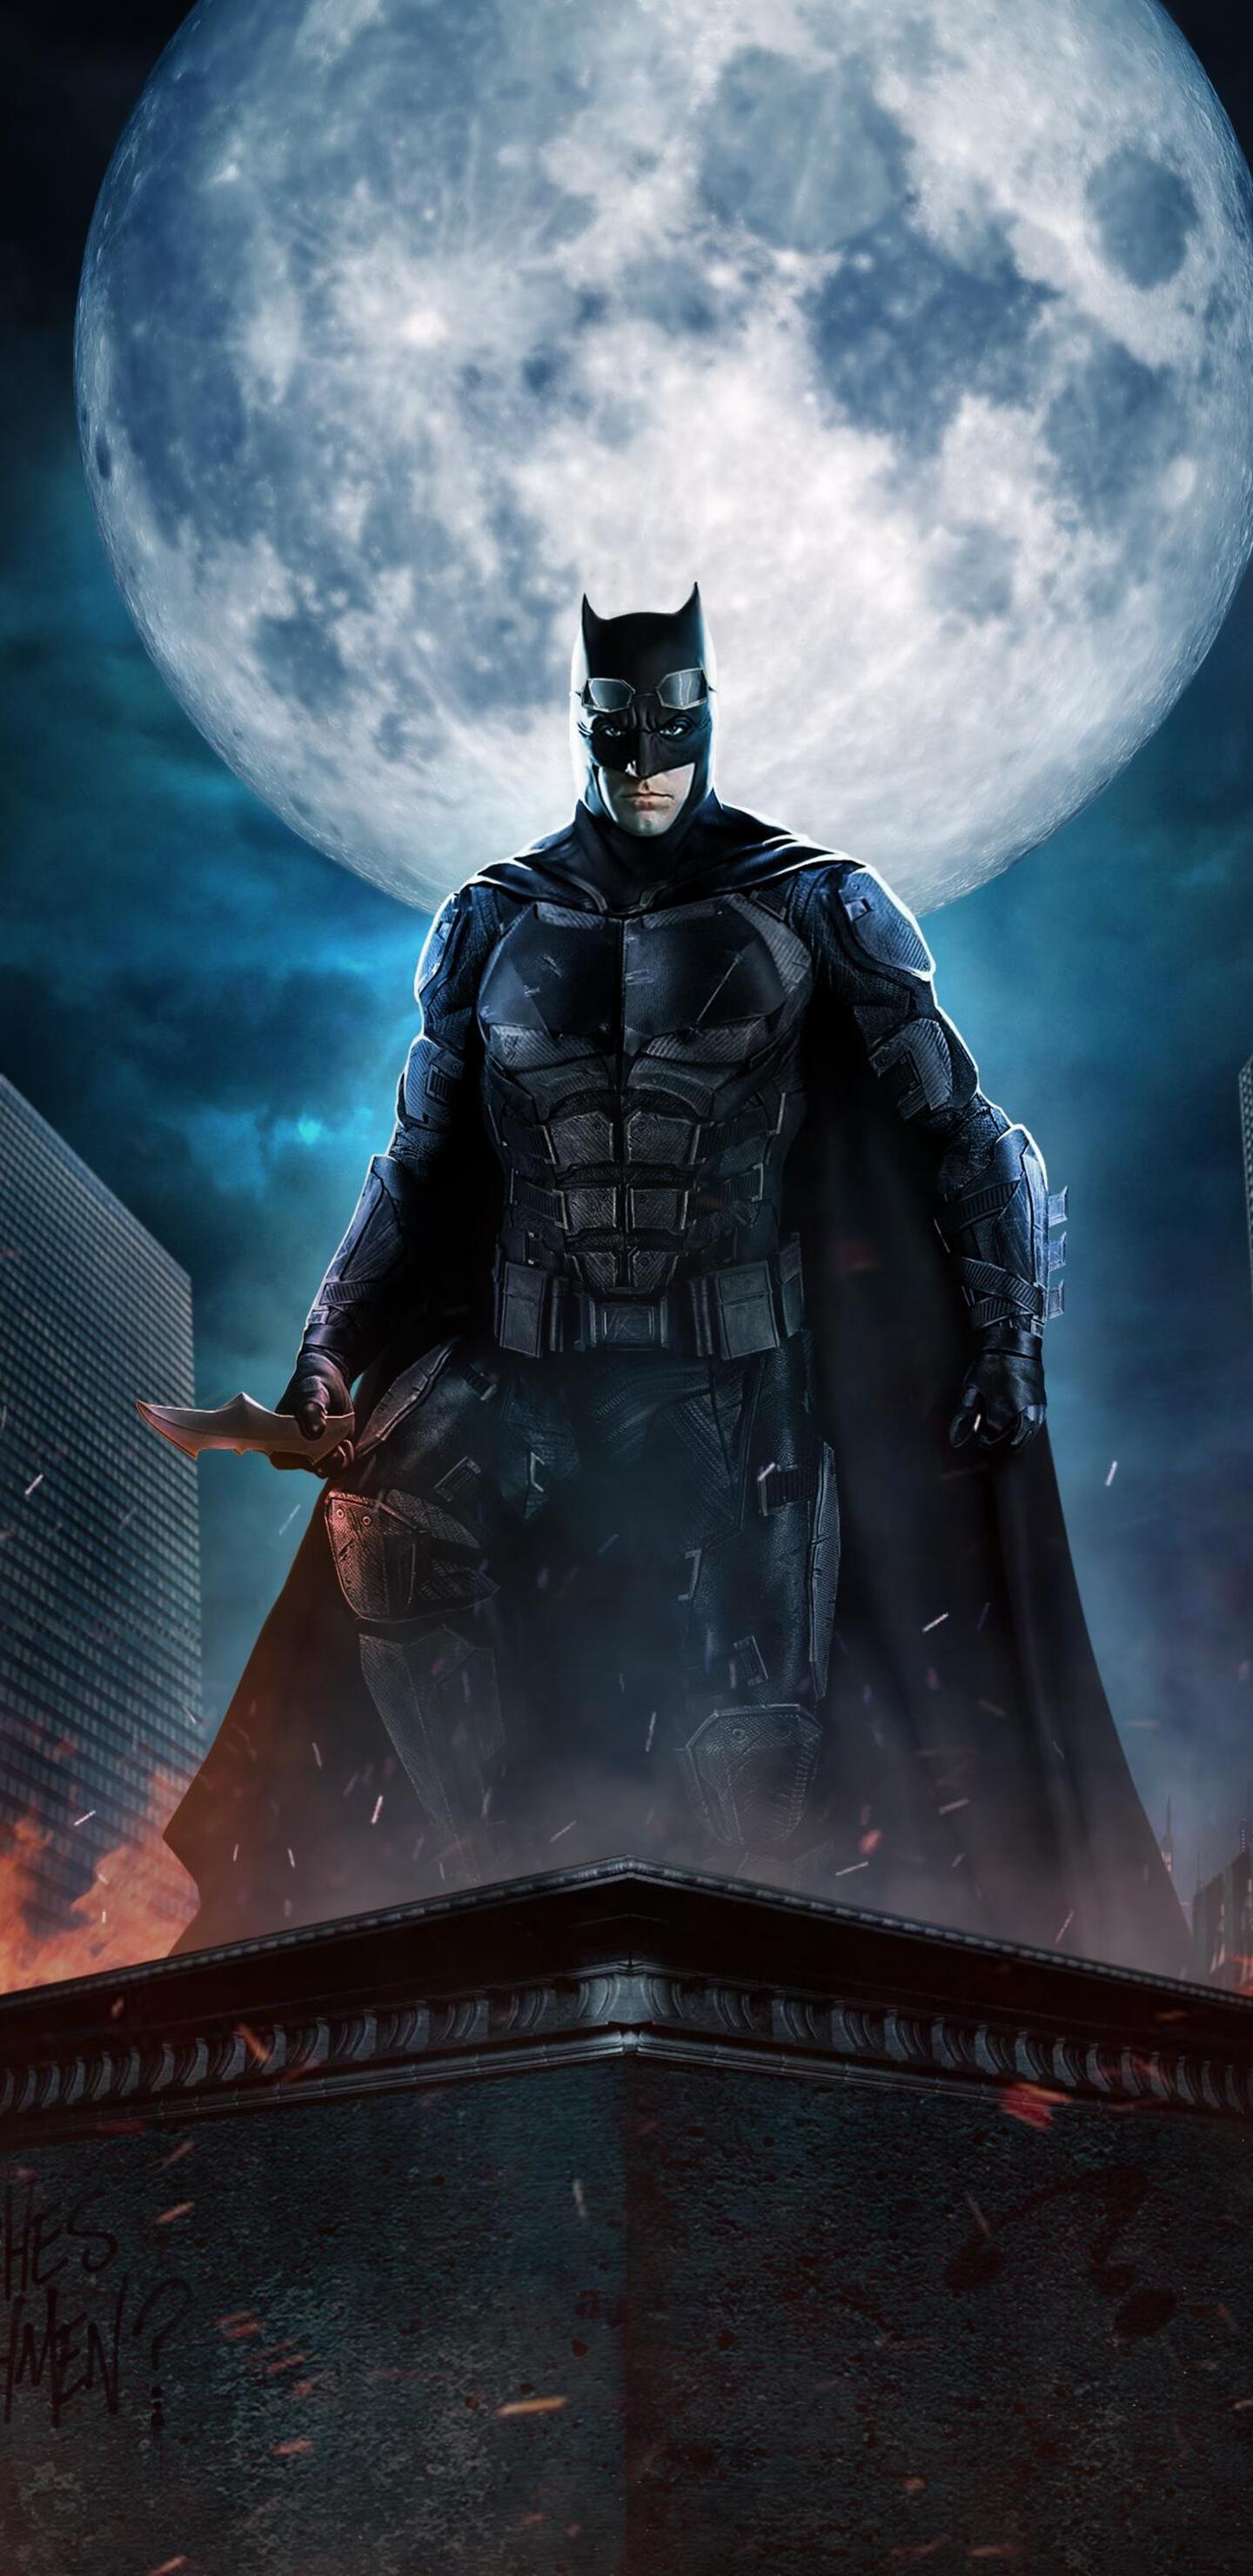 Wallpaper 4k Samsung Galaxy S8 Girls 1440x2960 Justice League Batman The Dark Knight Fan Art